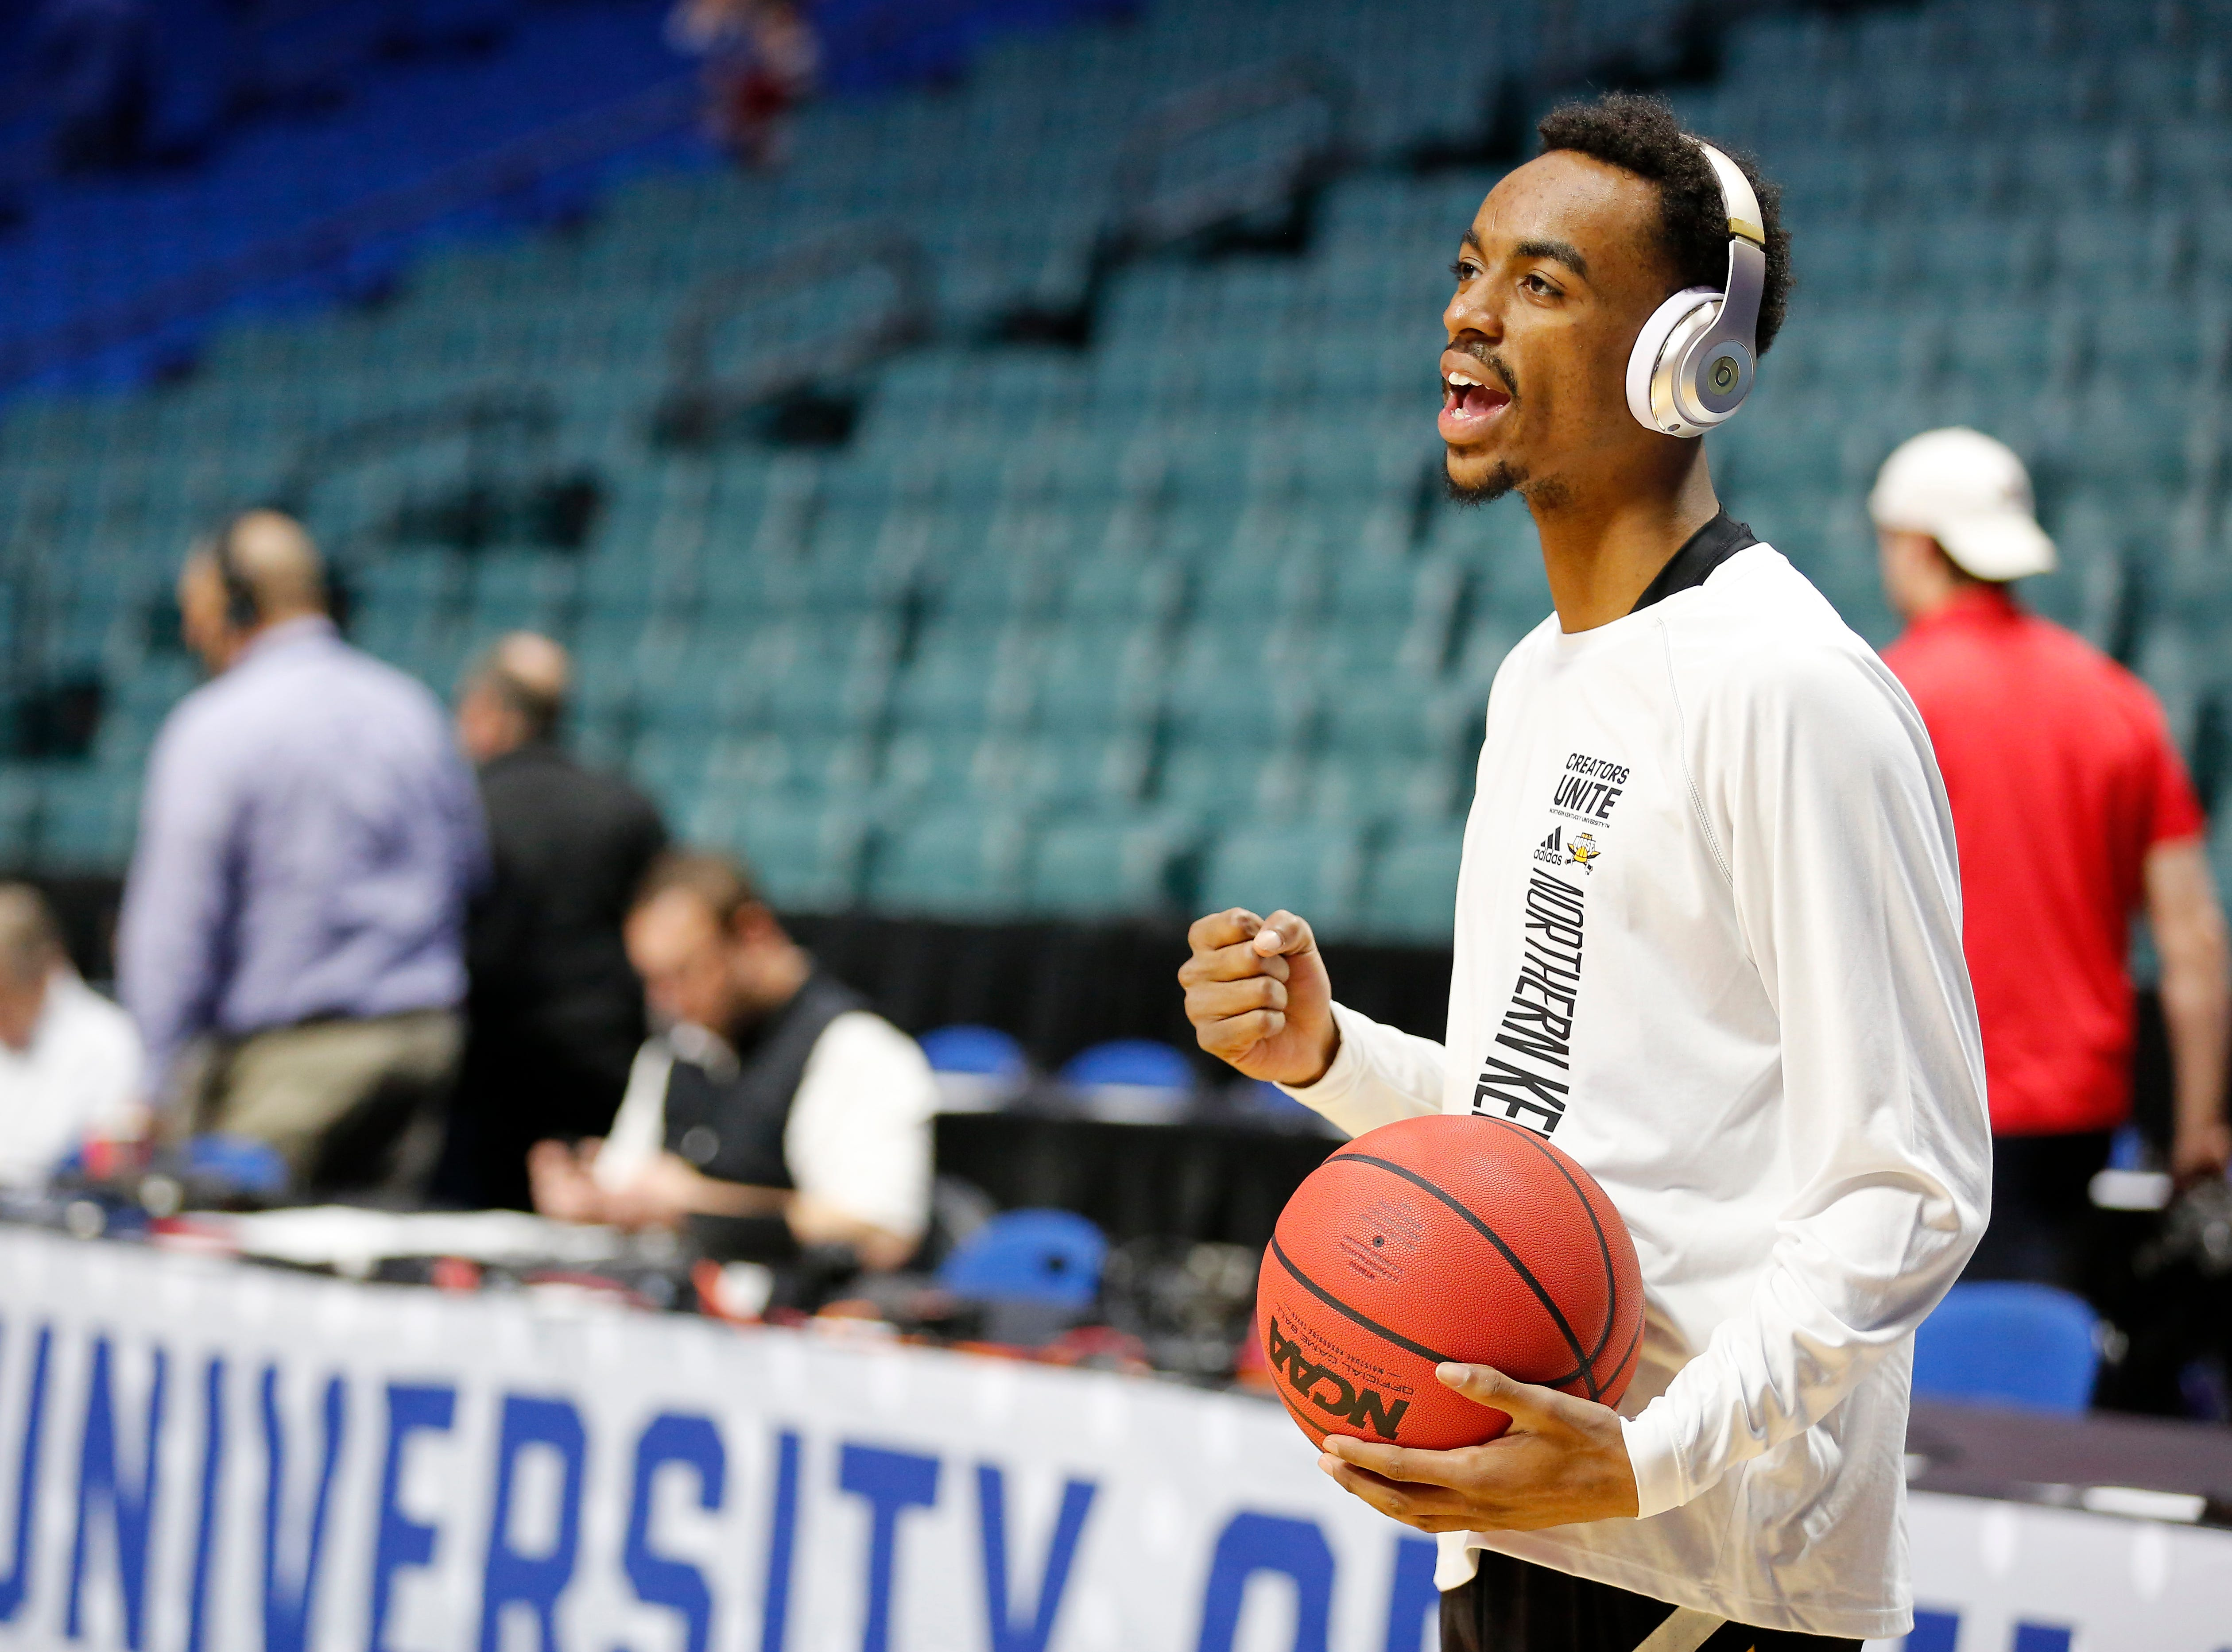 Northern Kentucky Norse guard Jalen Tate (11) listens to music as he warms up during shoot around before the NCAA Tournament First Round game between the 14-seeded Northern Kentucky Norse and the 3-seeded Texas Tech Red Raiders the BOK Center in downtown Tulsa on Friday, March 22, 2019.